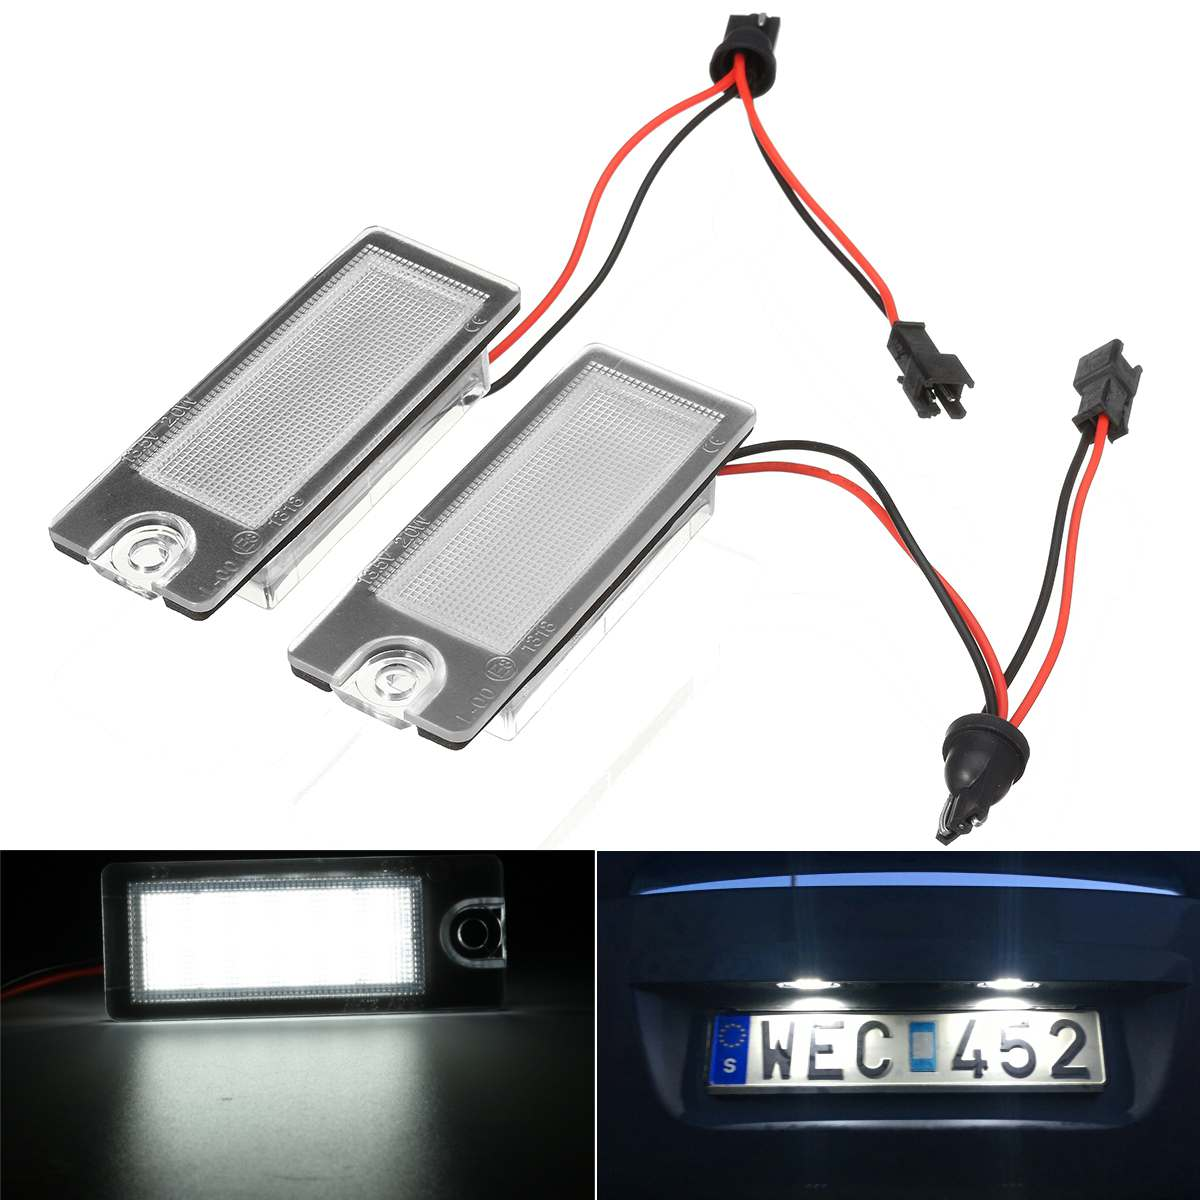 Pair Rear Licence Number Plate LED Light White For Volvo V70 CX70 S60 S80 <font><b>XC90</b></font> 2001 2002 <font><b>2003</b></font> 2004 2005 2006 2007 image